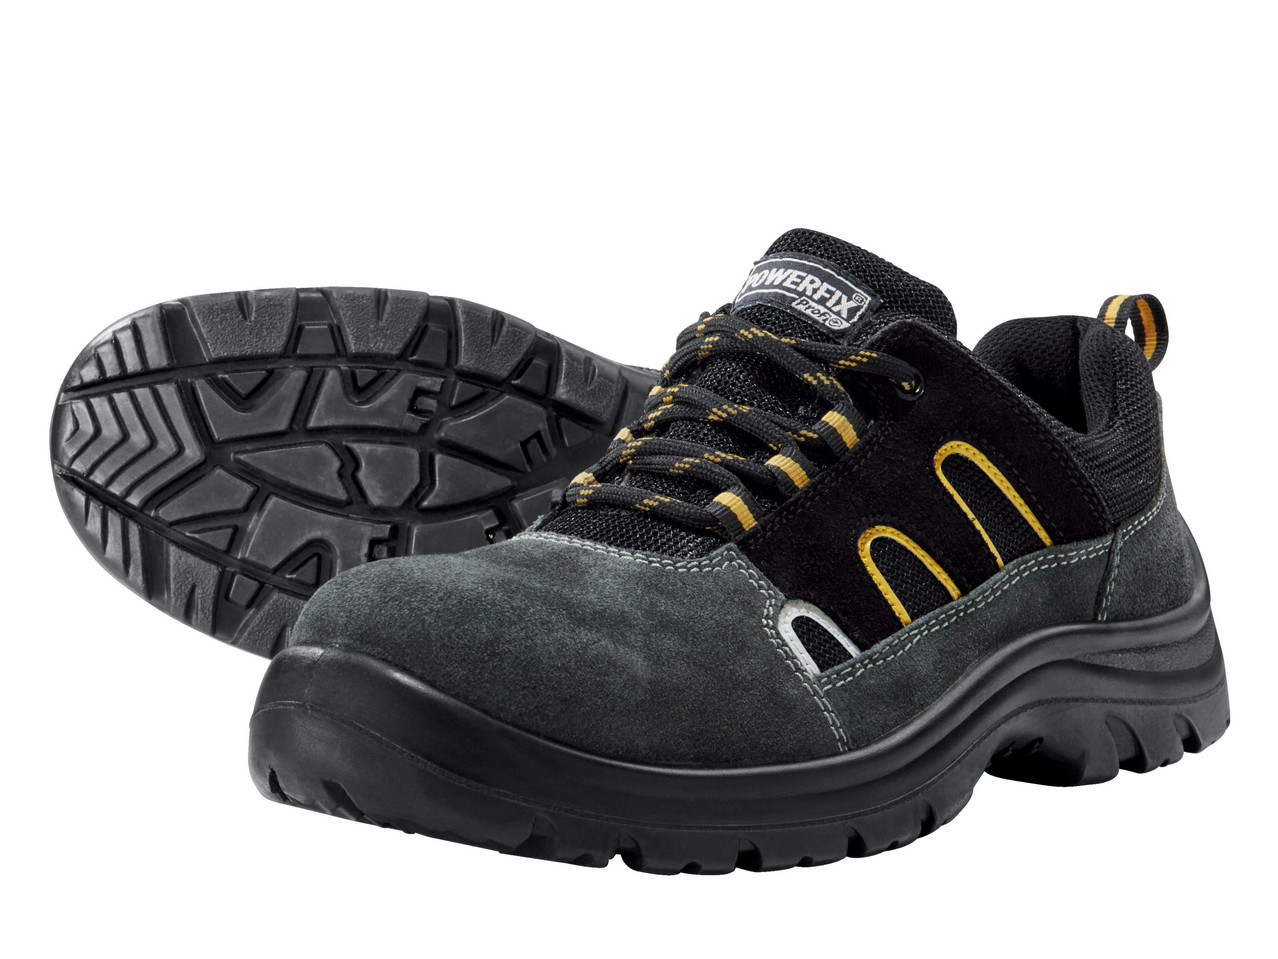 POWERFIX Men's Leather S3 Safety Boots